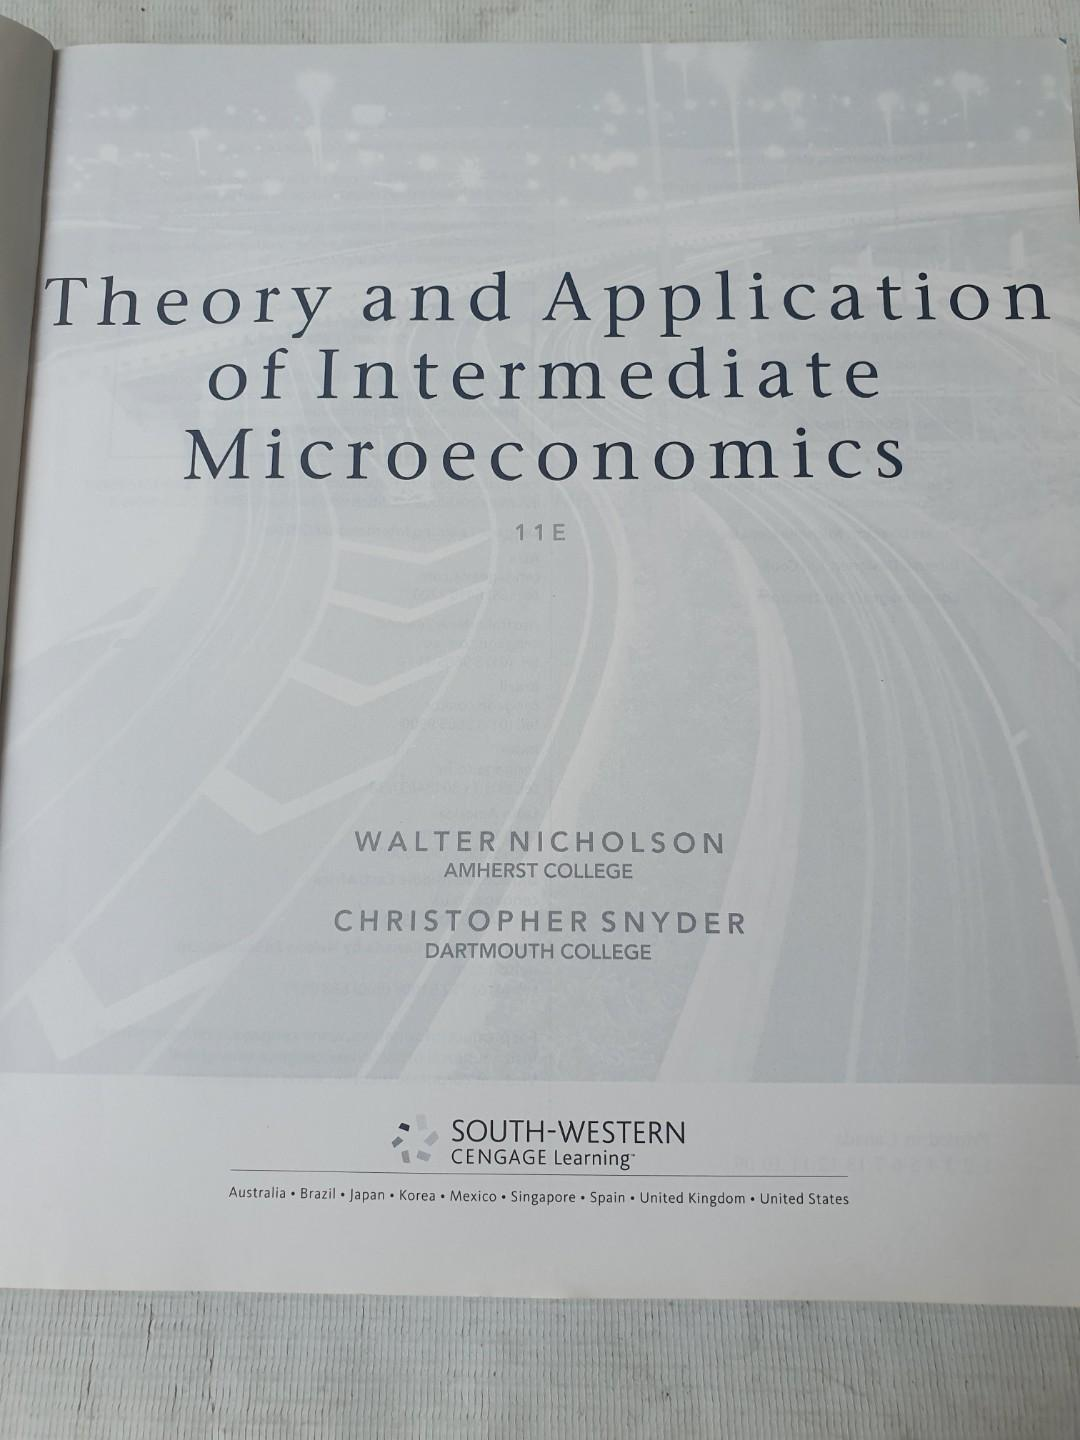 Preloved book Theory and Application of intermediate Macroeconomics by Nicholson and Synder